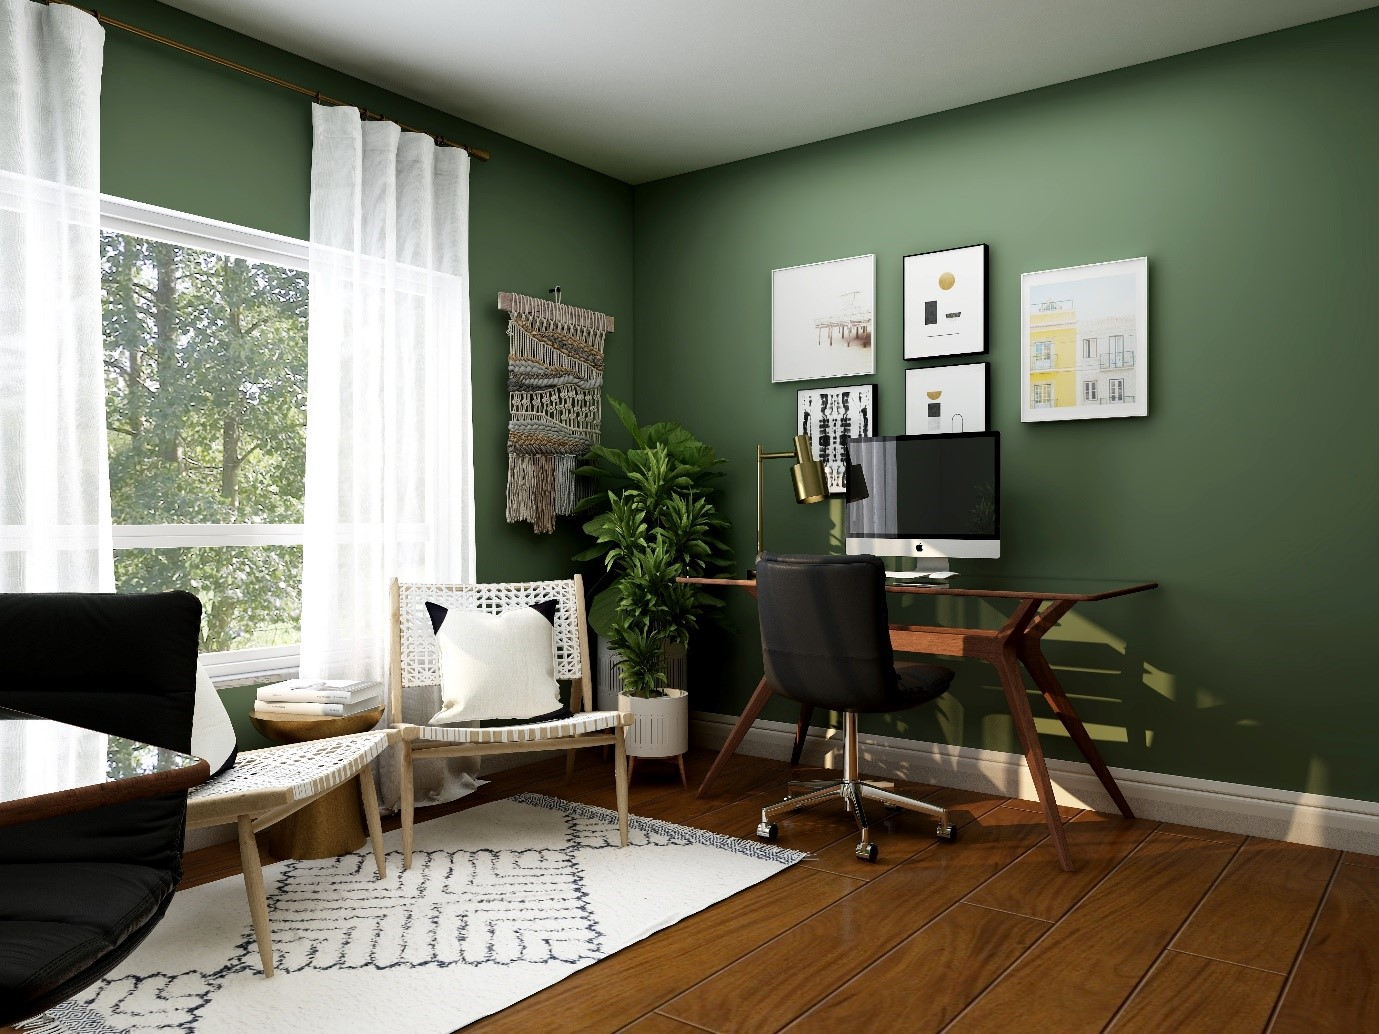 You will be calm, serene and productive if you create an oasis of calm in your home office